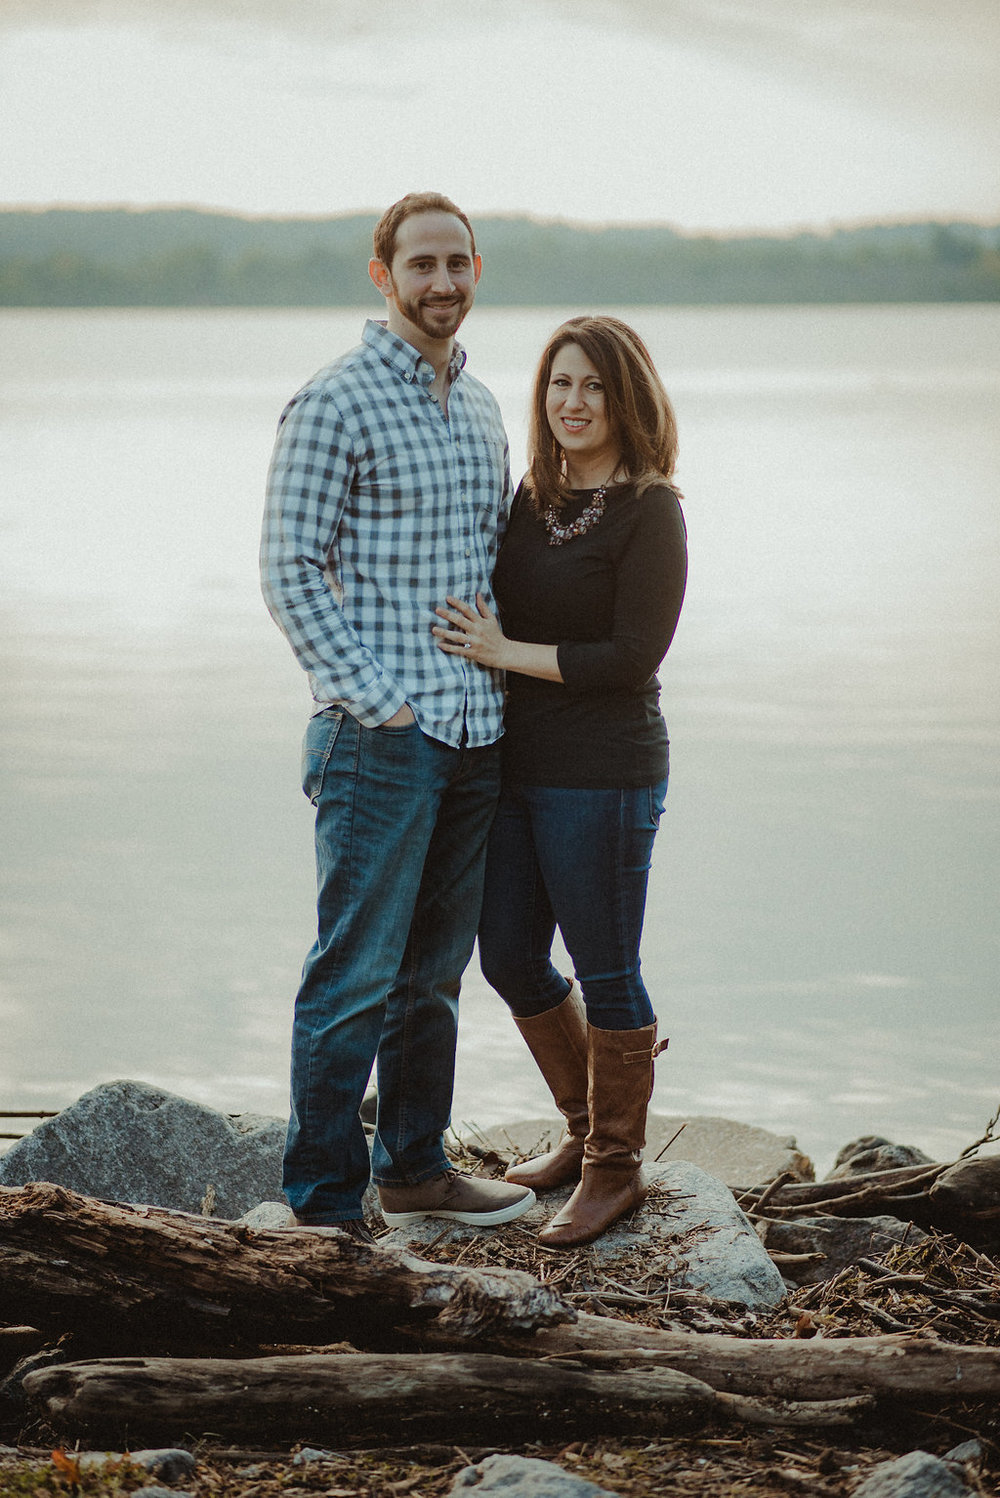 Couple posing on rock near river